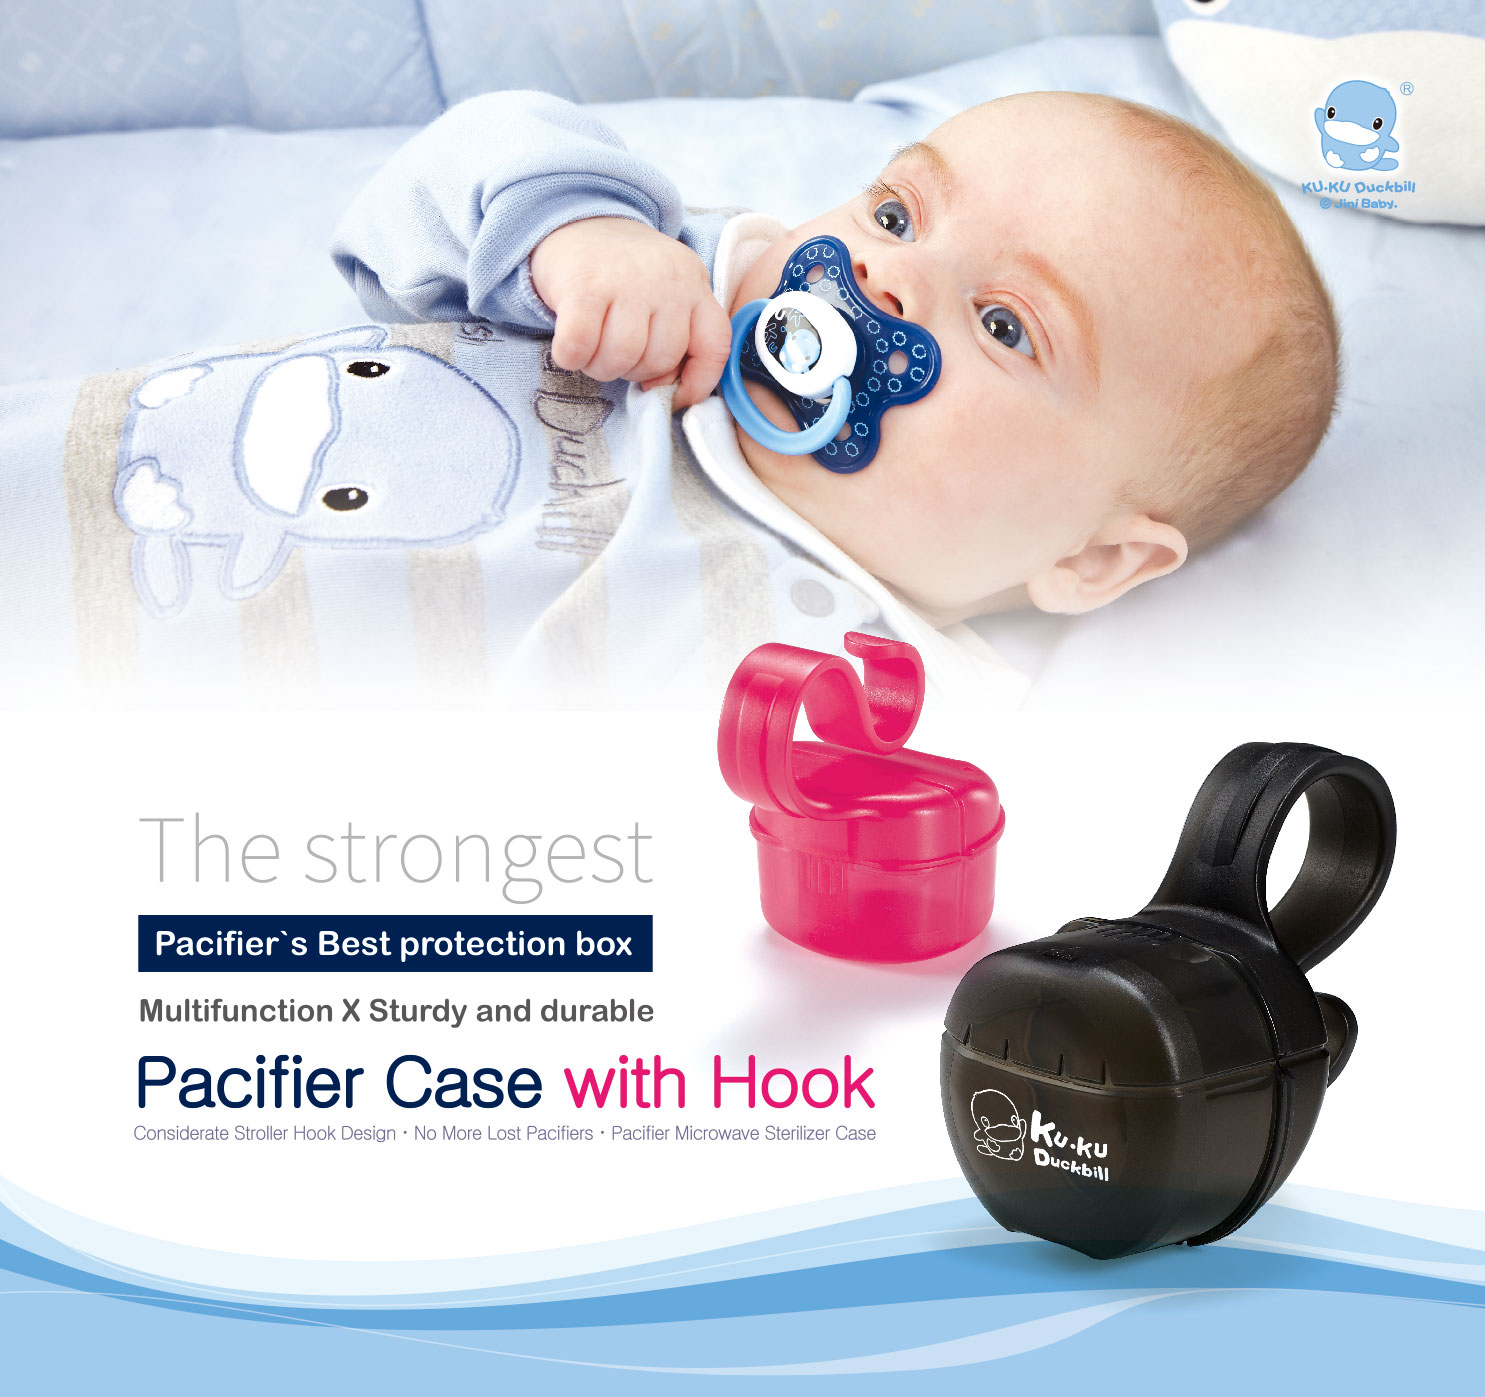 Kuku Duckbill KU5469 Pacifier Case With Hook